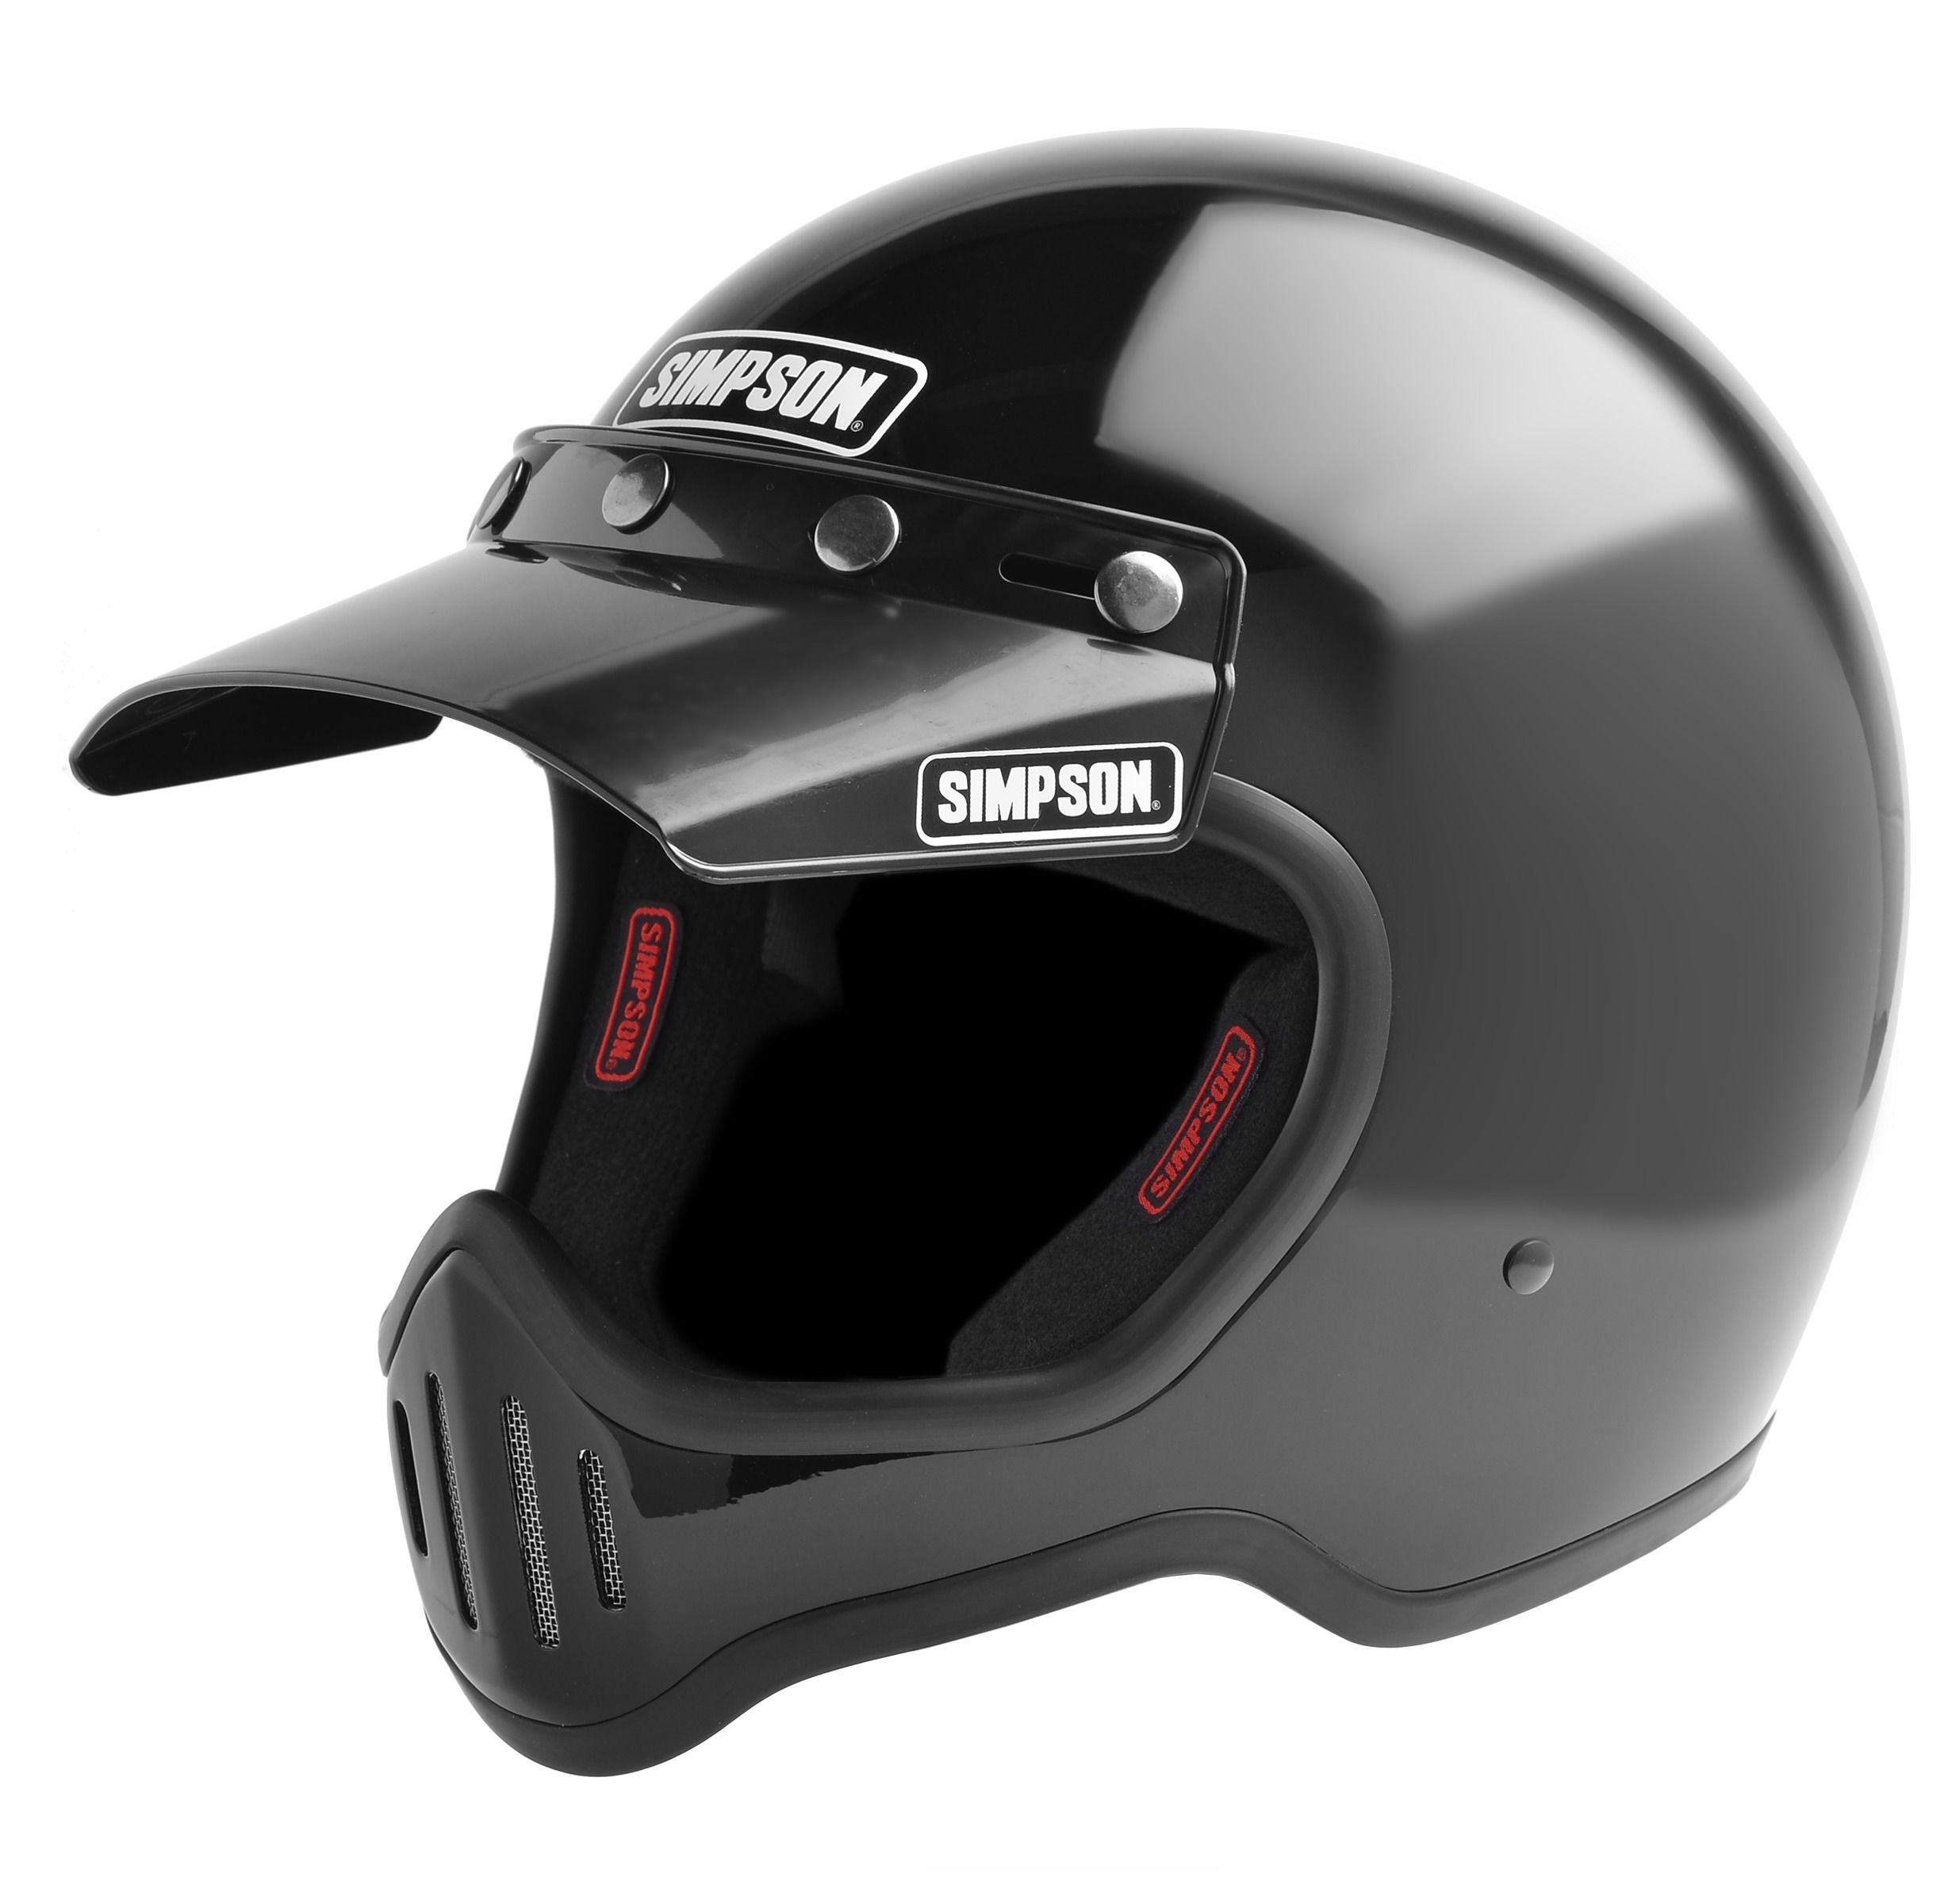 Simpson m50 helmet helmets motorcycle riding gear and riding gear the classic simpson helmet is back and better than ever this century retro remake has been updated with a modern dot safety certification and plush 1betcityfo Gallery